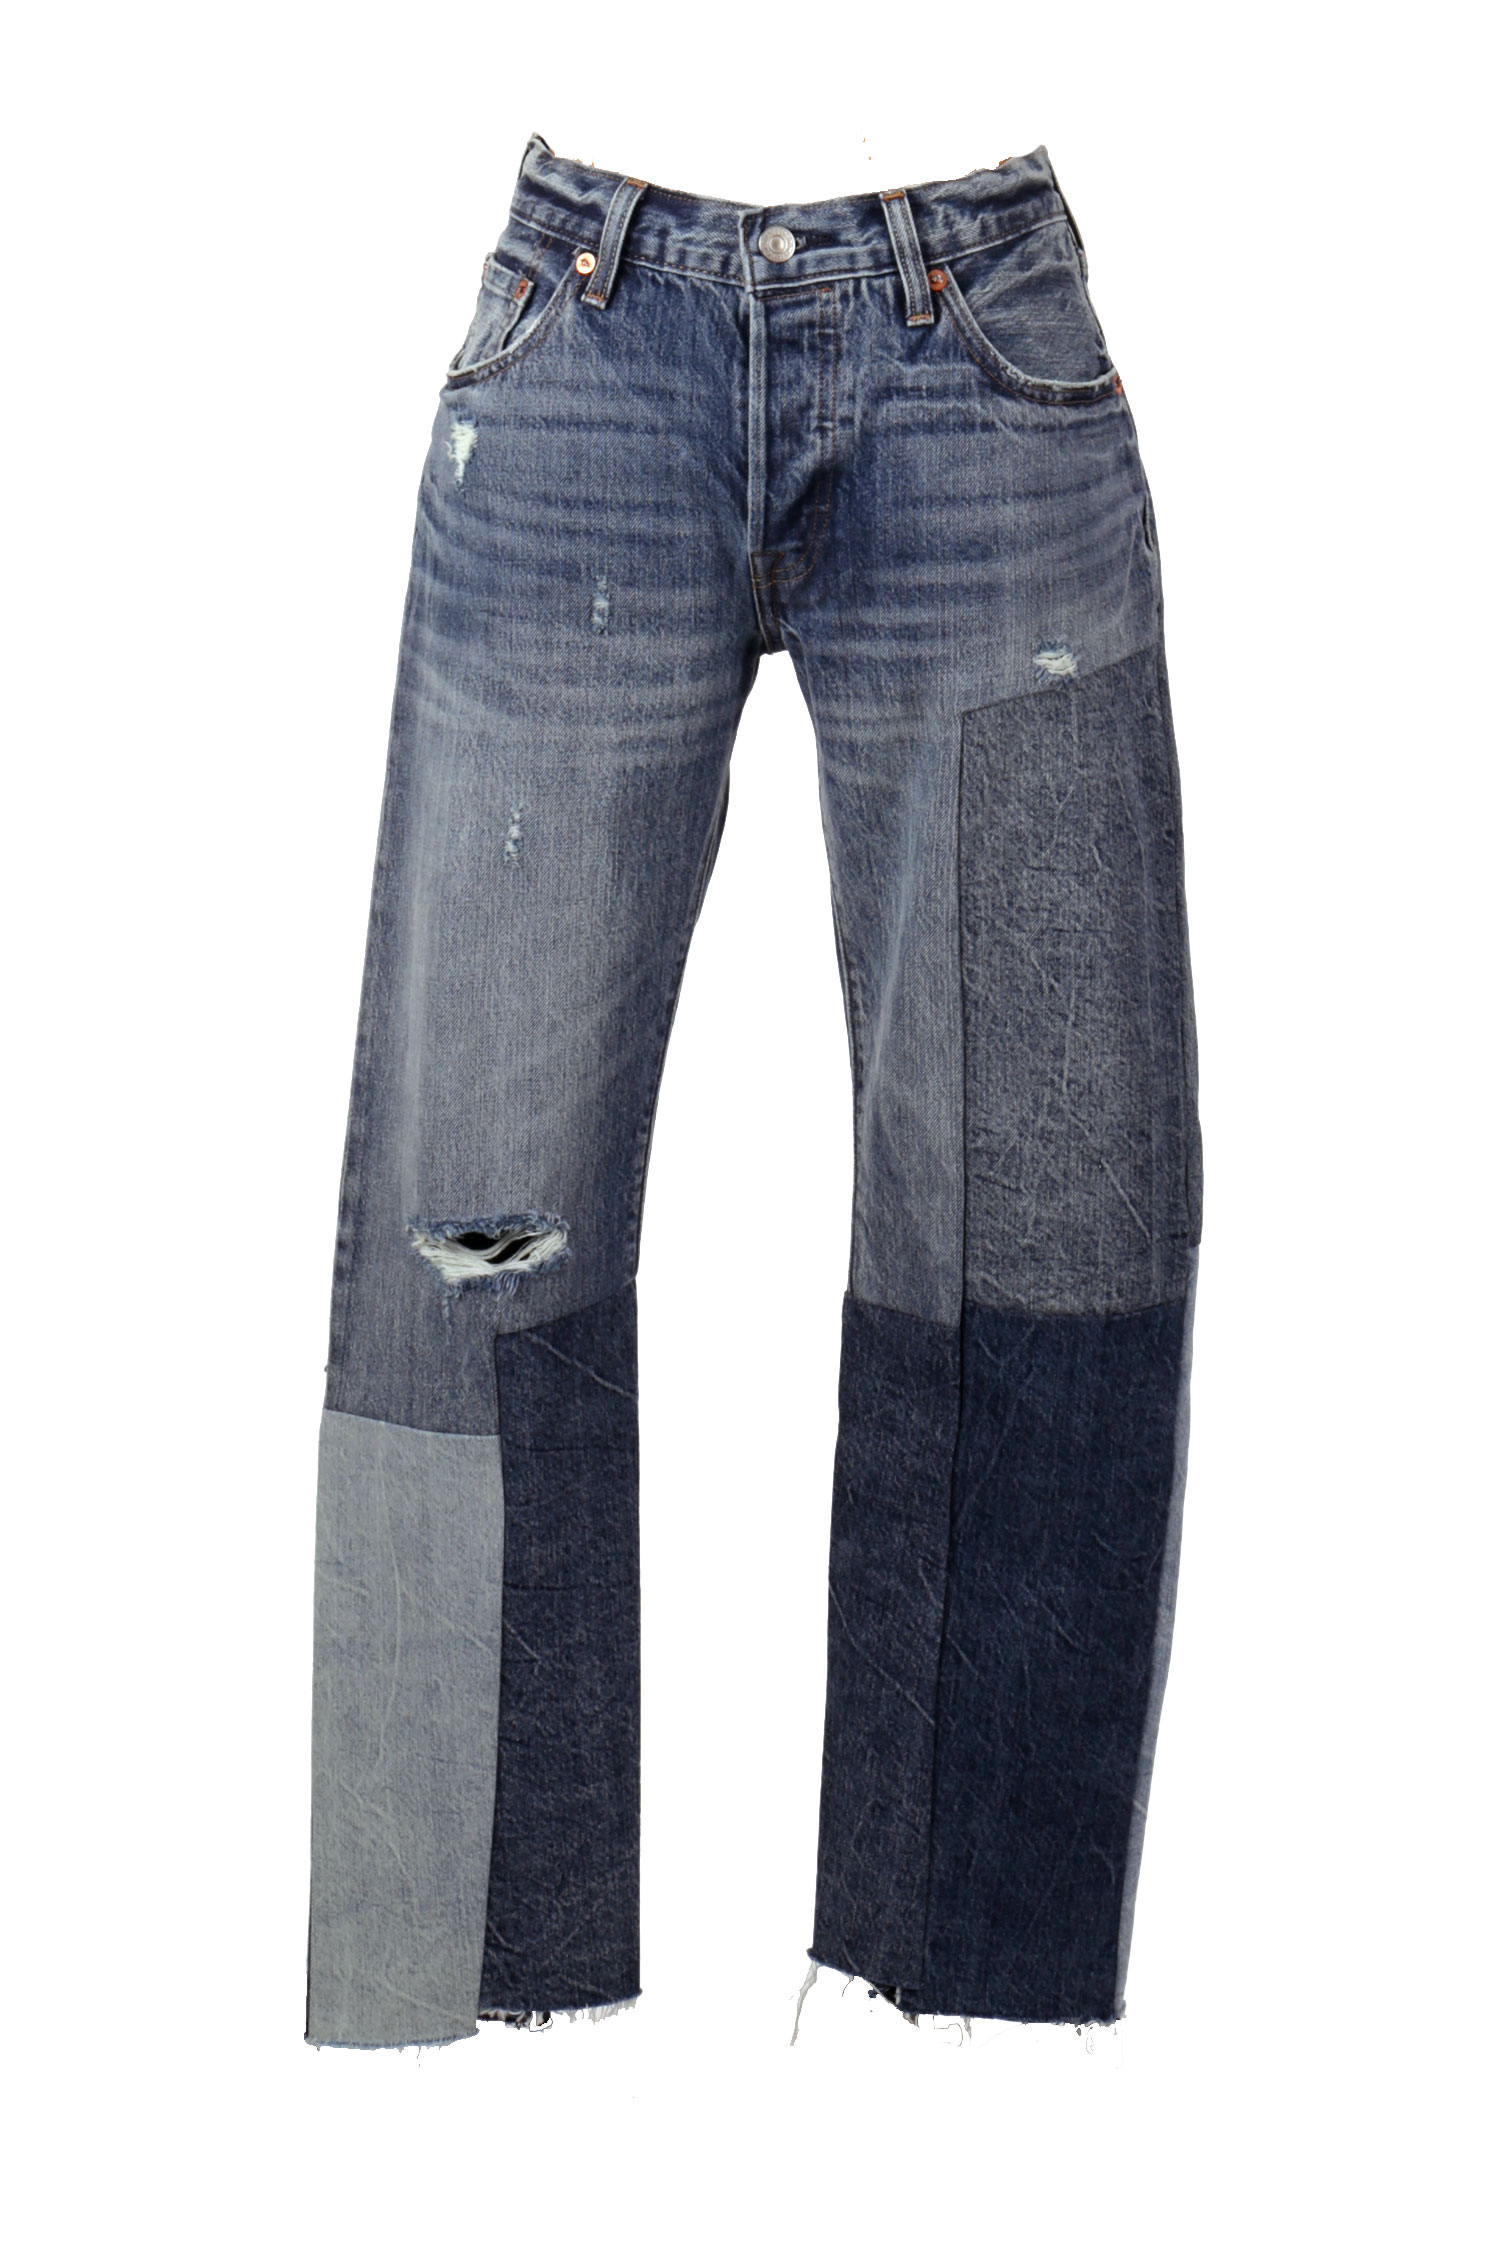 Women's 501 Ragged Lands Jeans